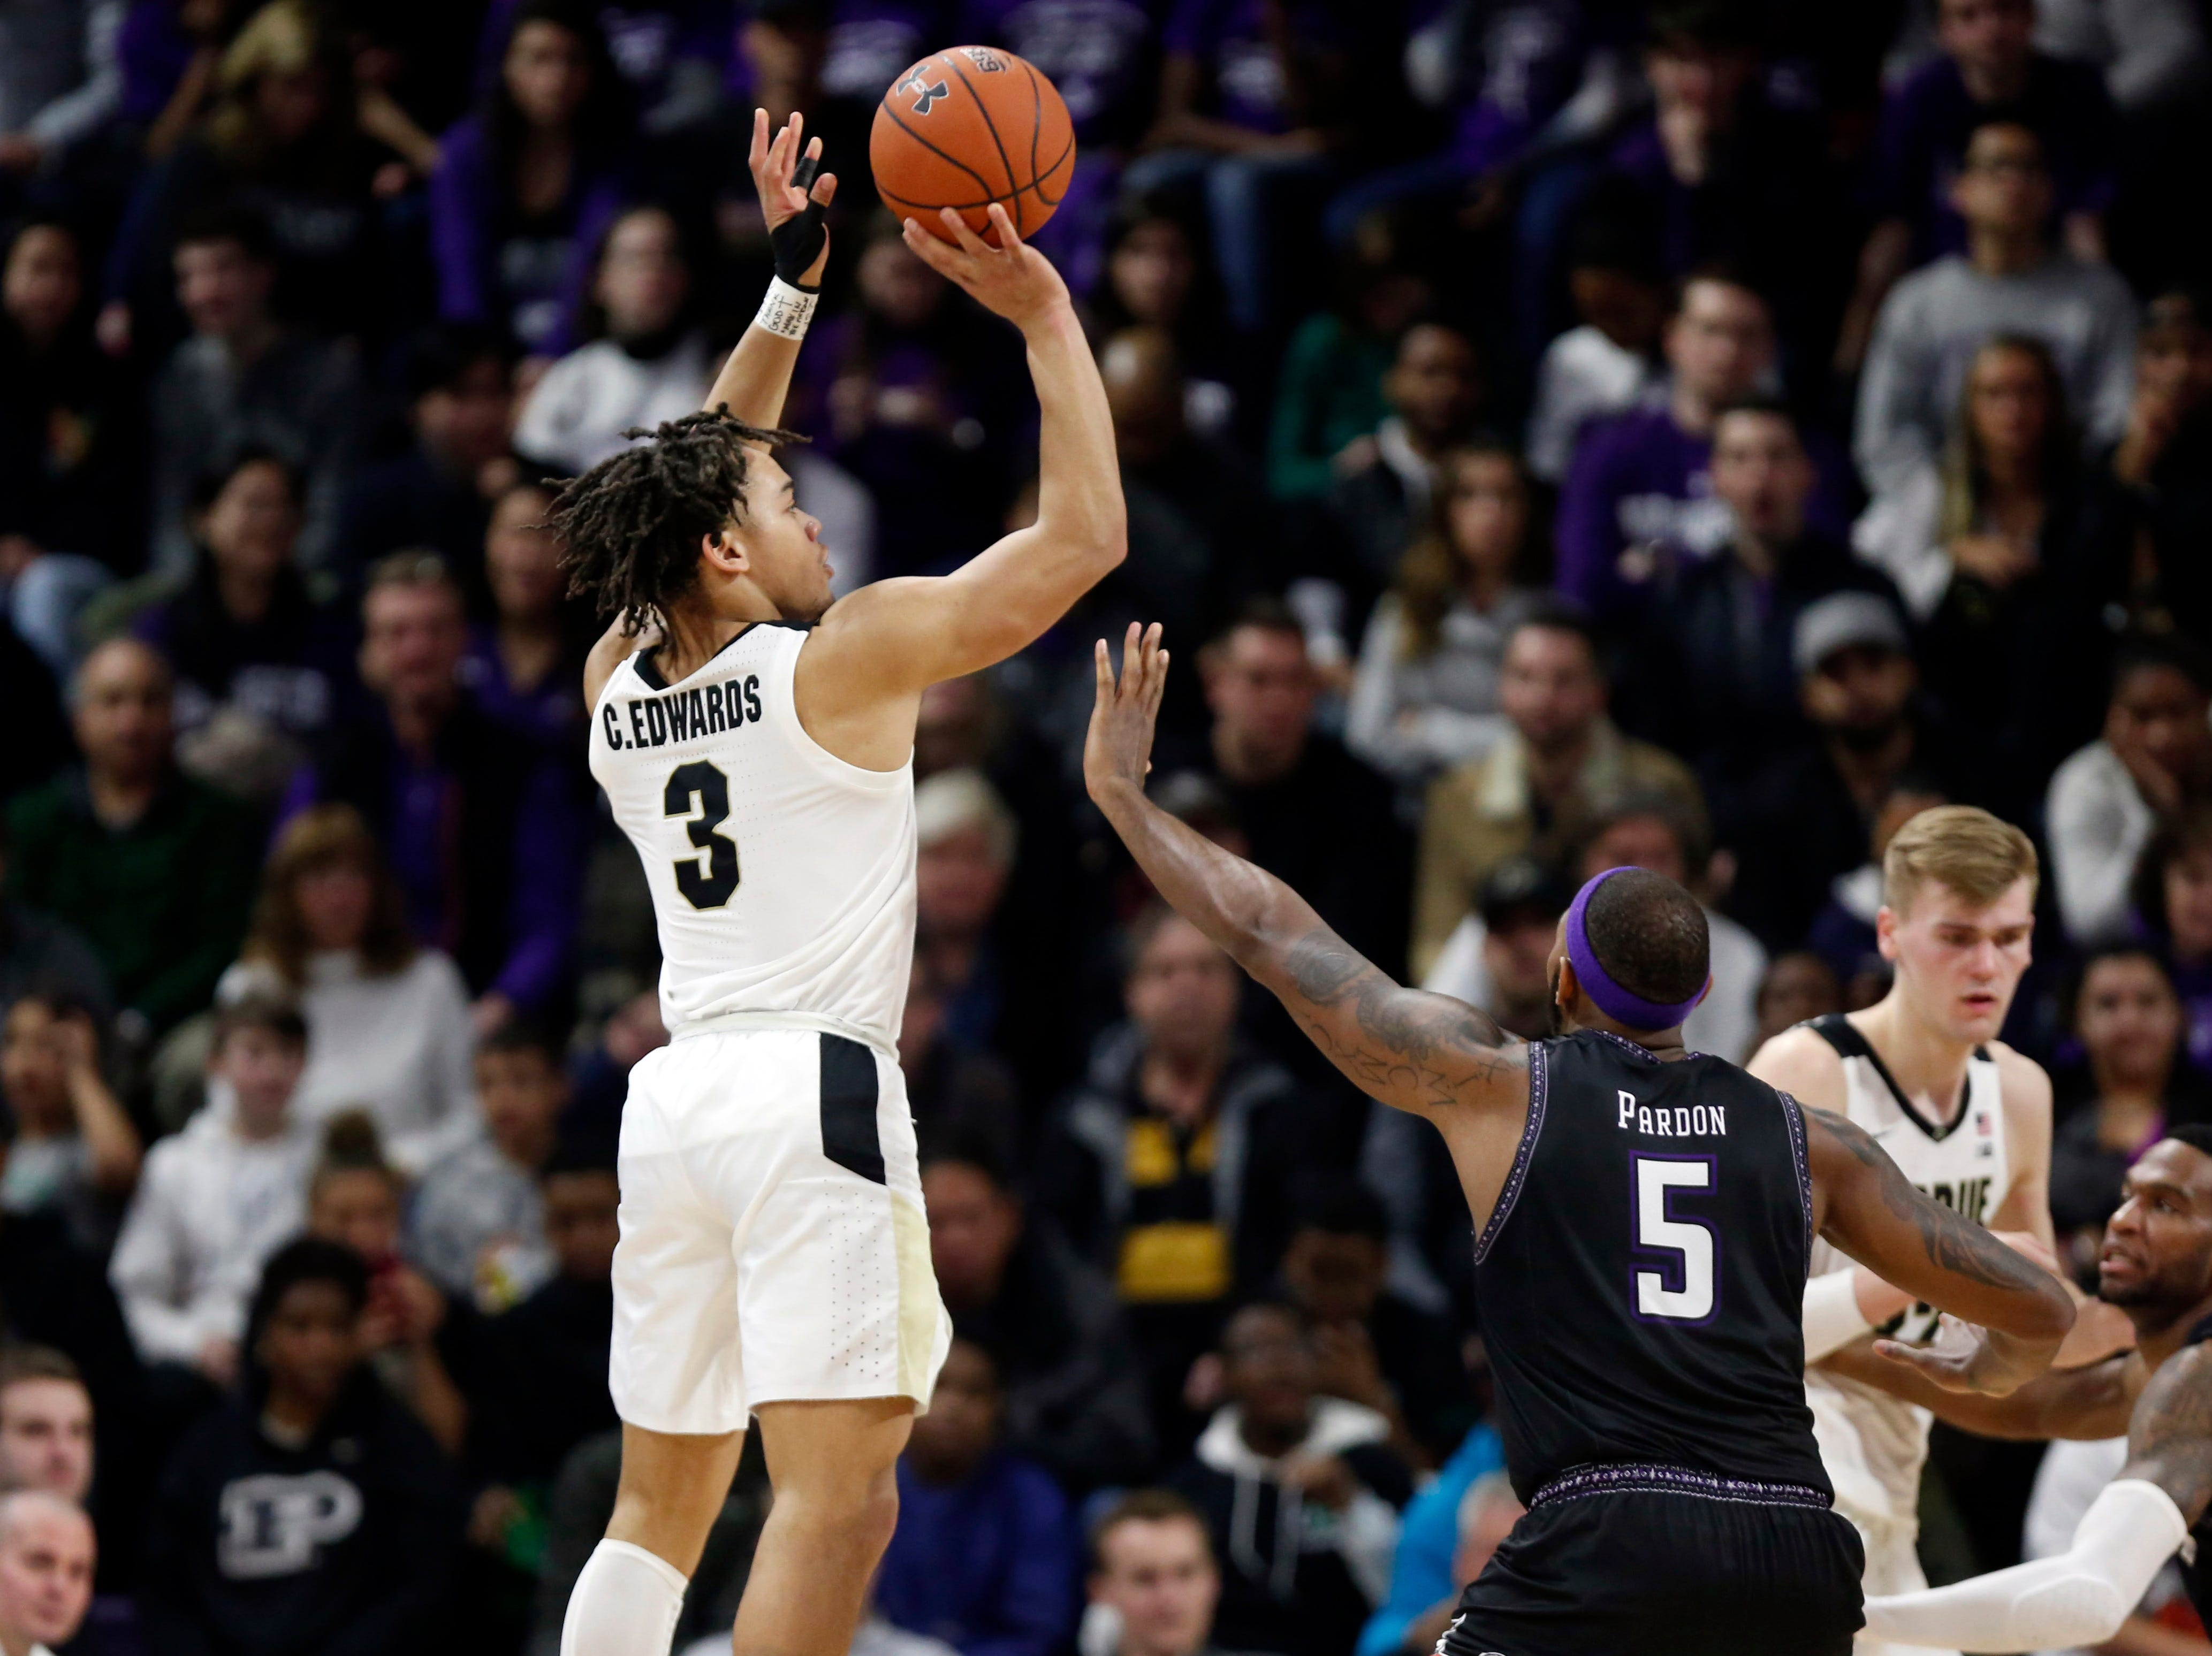 Mar 9, 2019; Evanston, IL, USA; Purdue Boilermakers guard Carsen Edwards (3) shoots over Northwestern Wildcats center Dererk Pardon (5) during the second half at Welsh-Ryan Arena. Mandatory Credit: Nuccio DiNuzzo-USA TODAY Sports